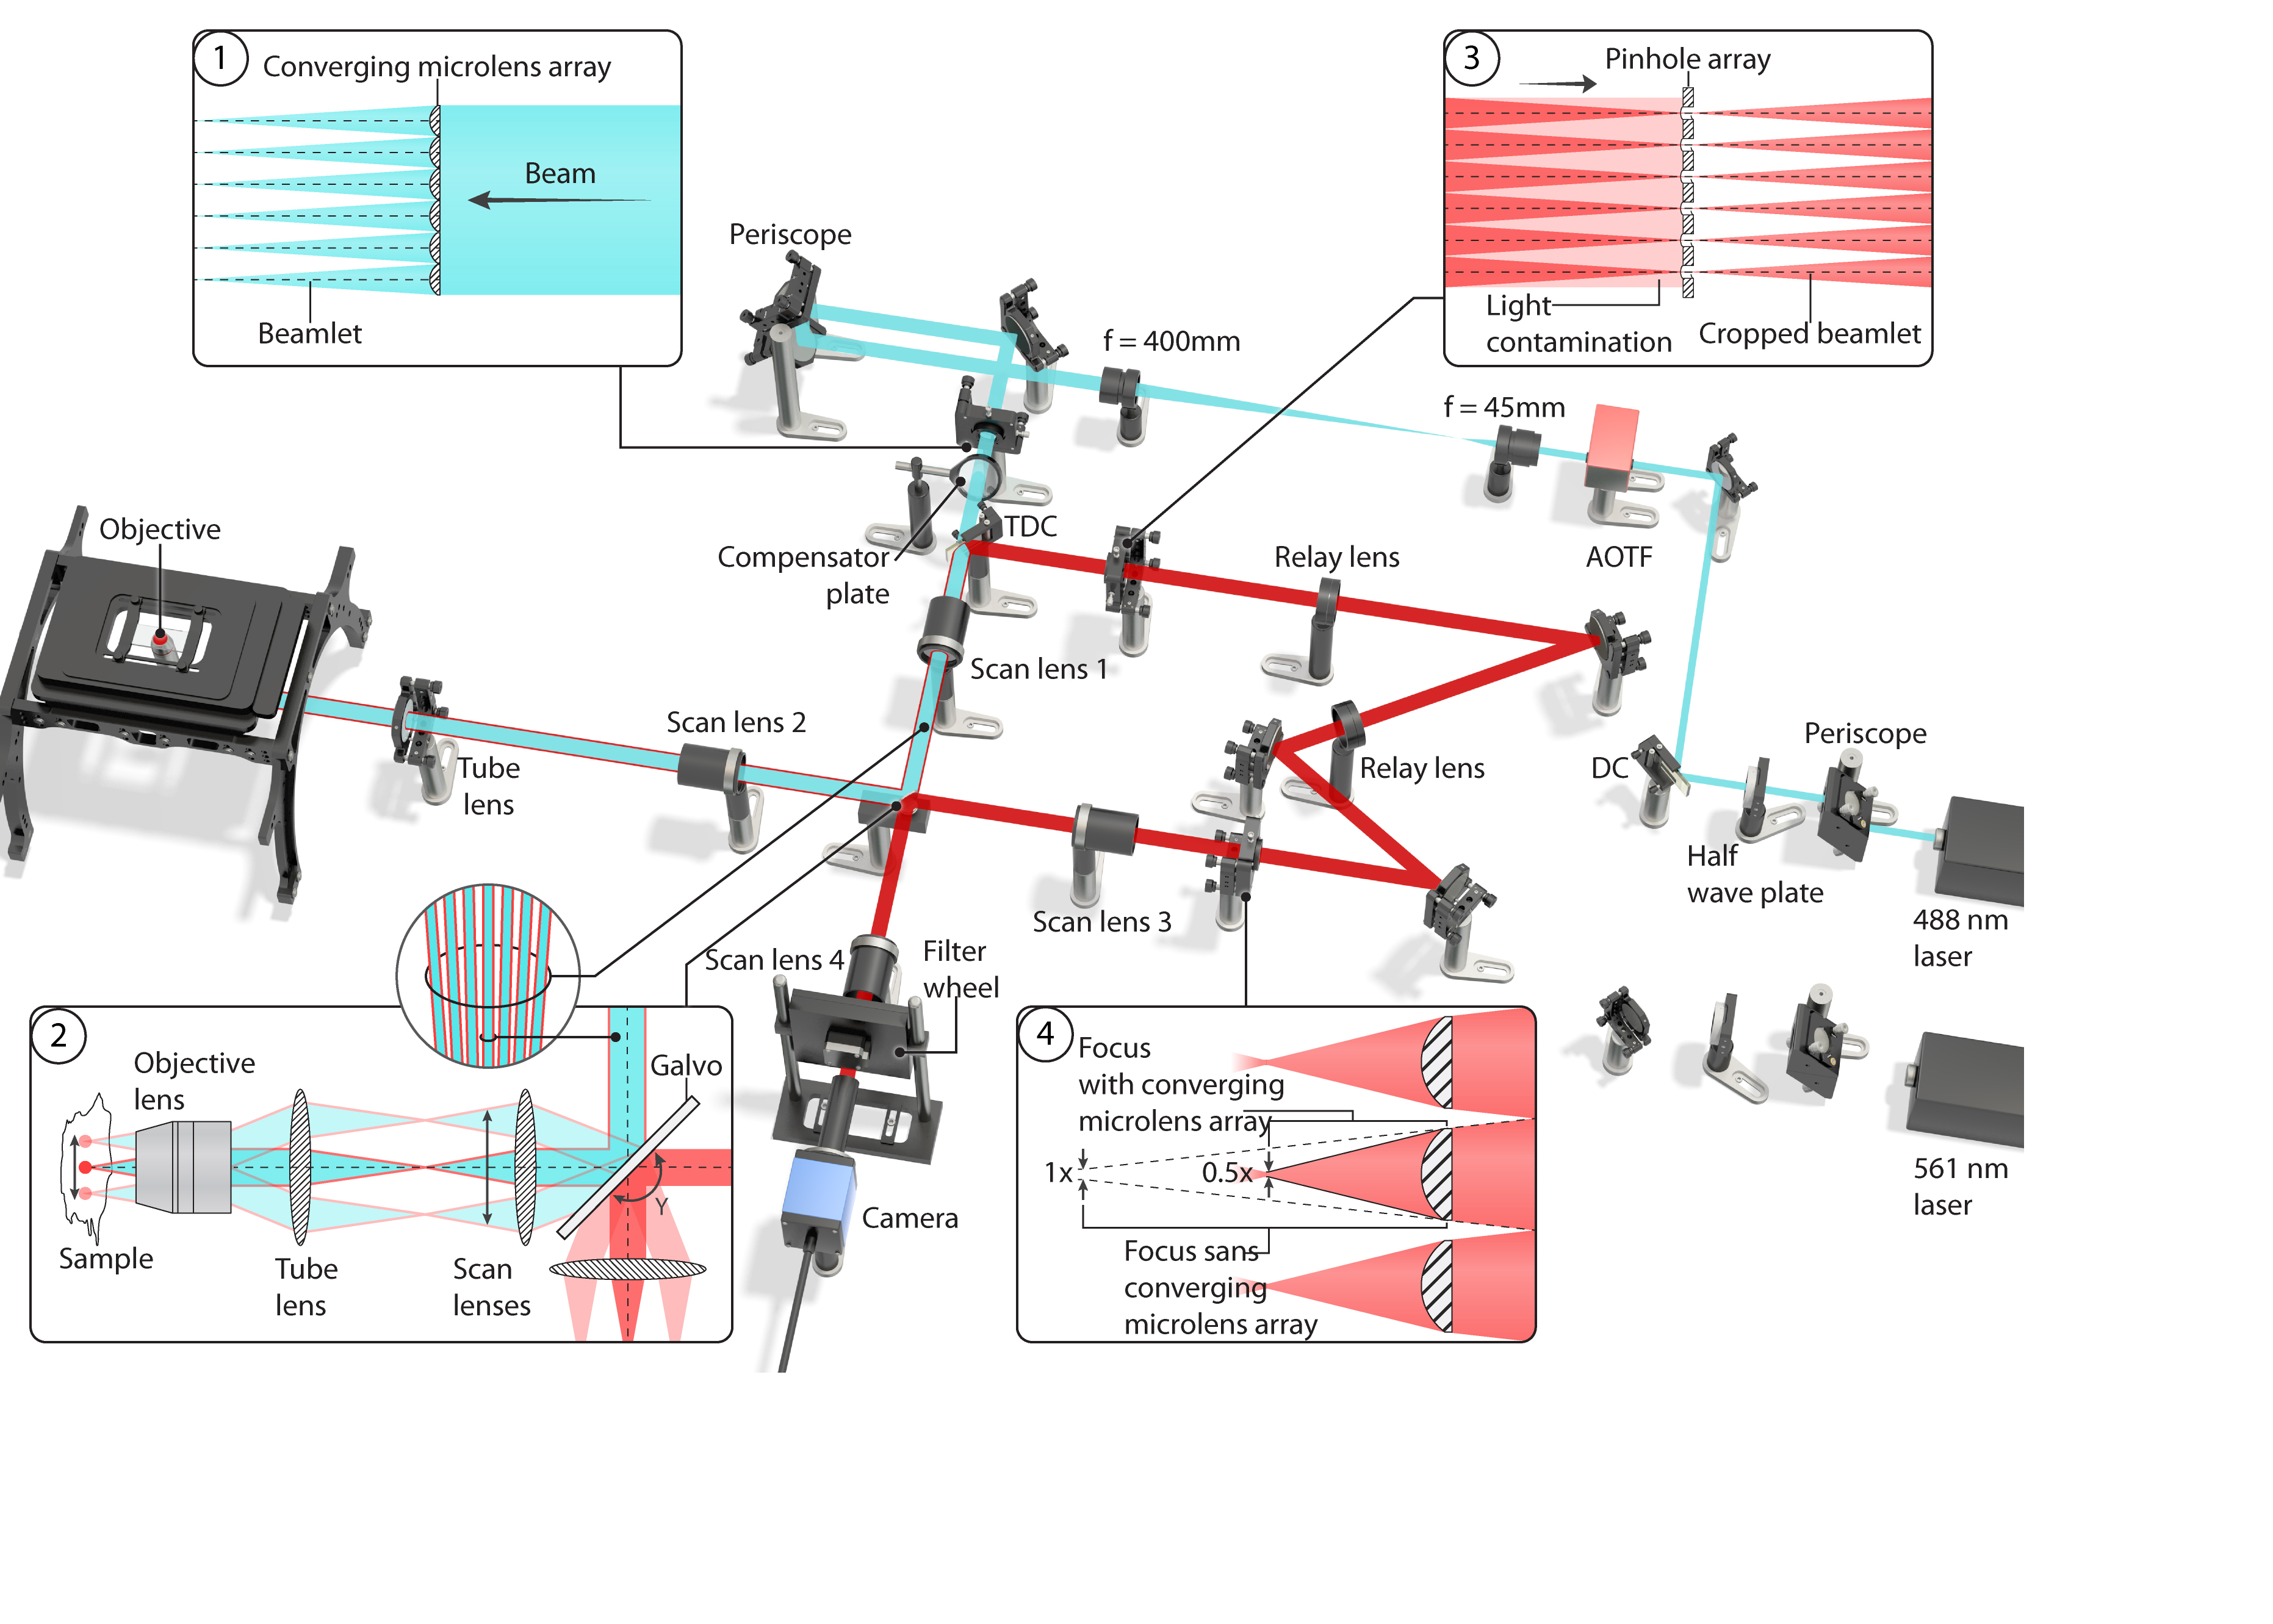 A drawn images of the microscope set up including mirrors and lasers.